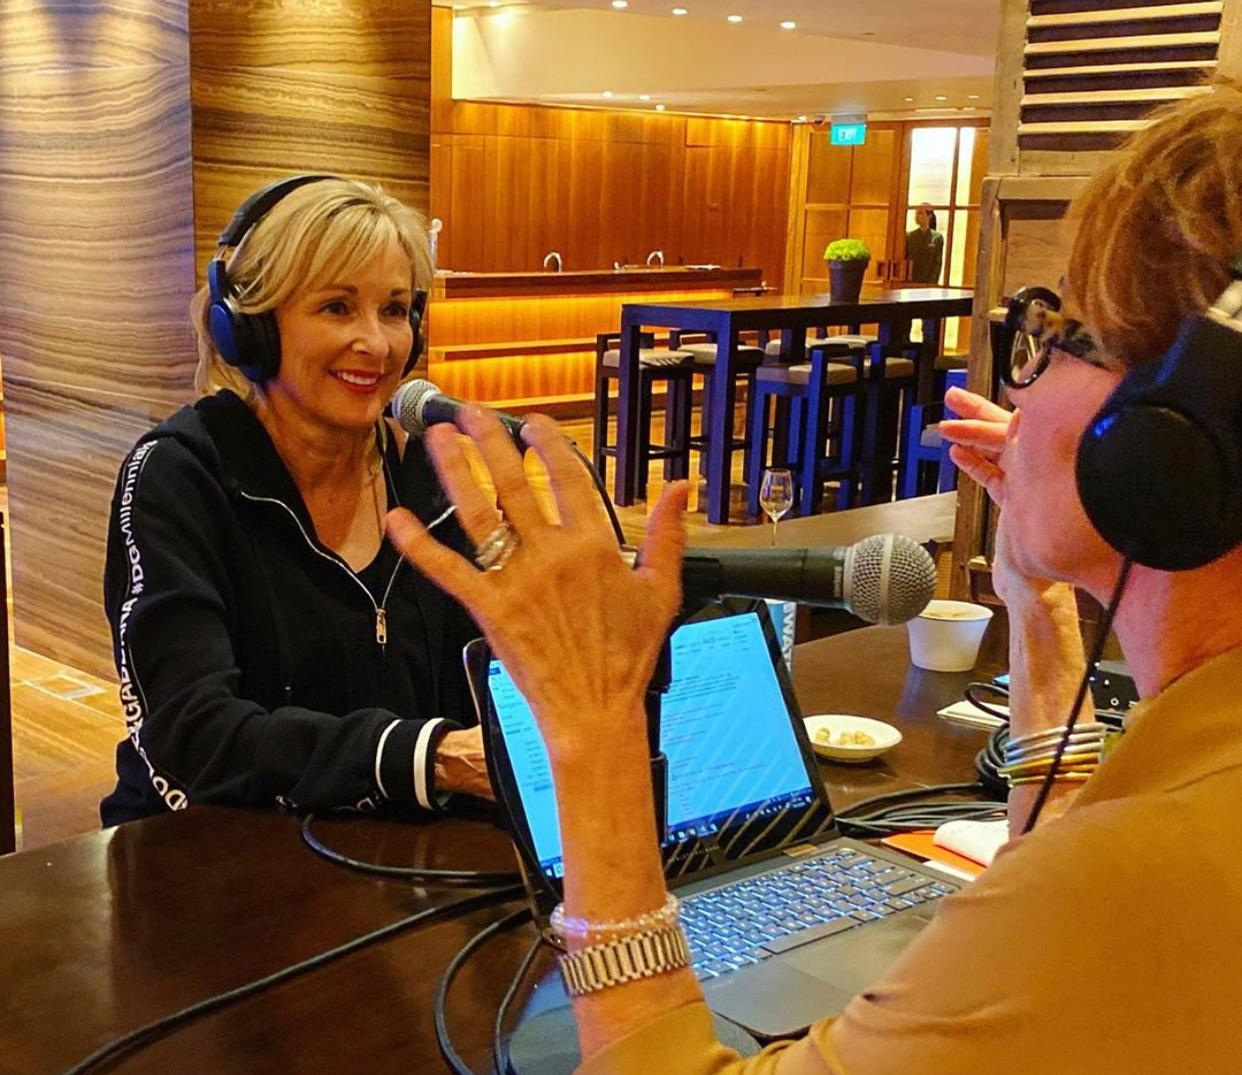 Susie Ellis, GWS chair and CEO, kicked off the series as the first episode's interviewee.